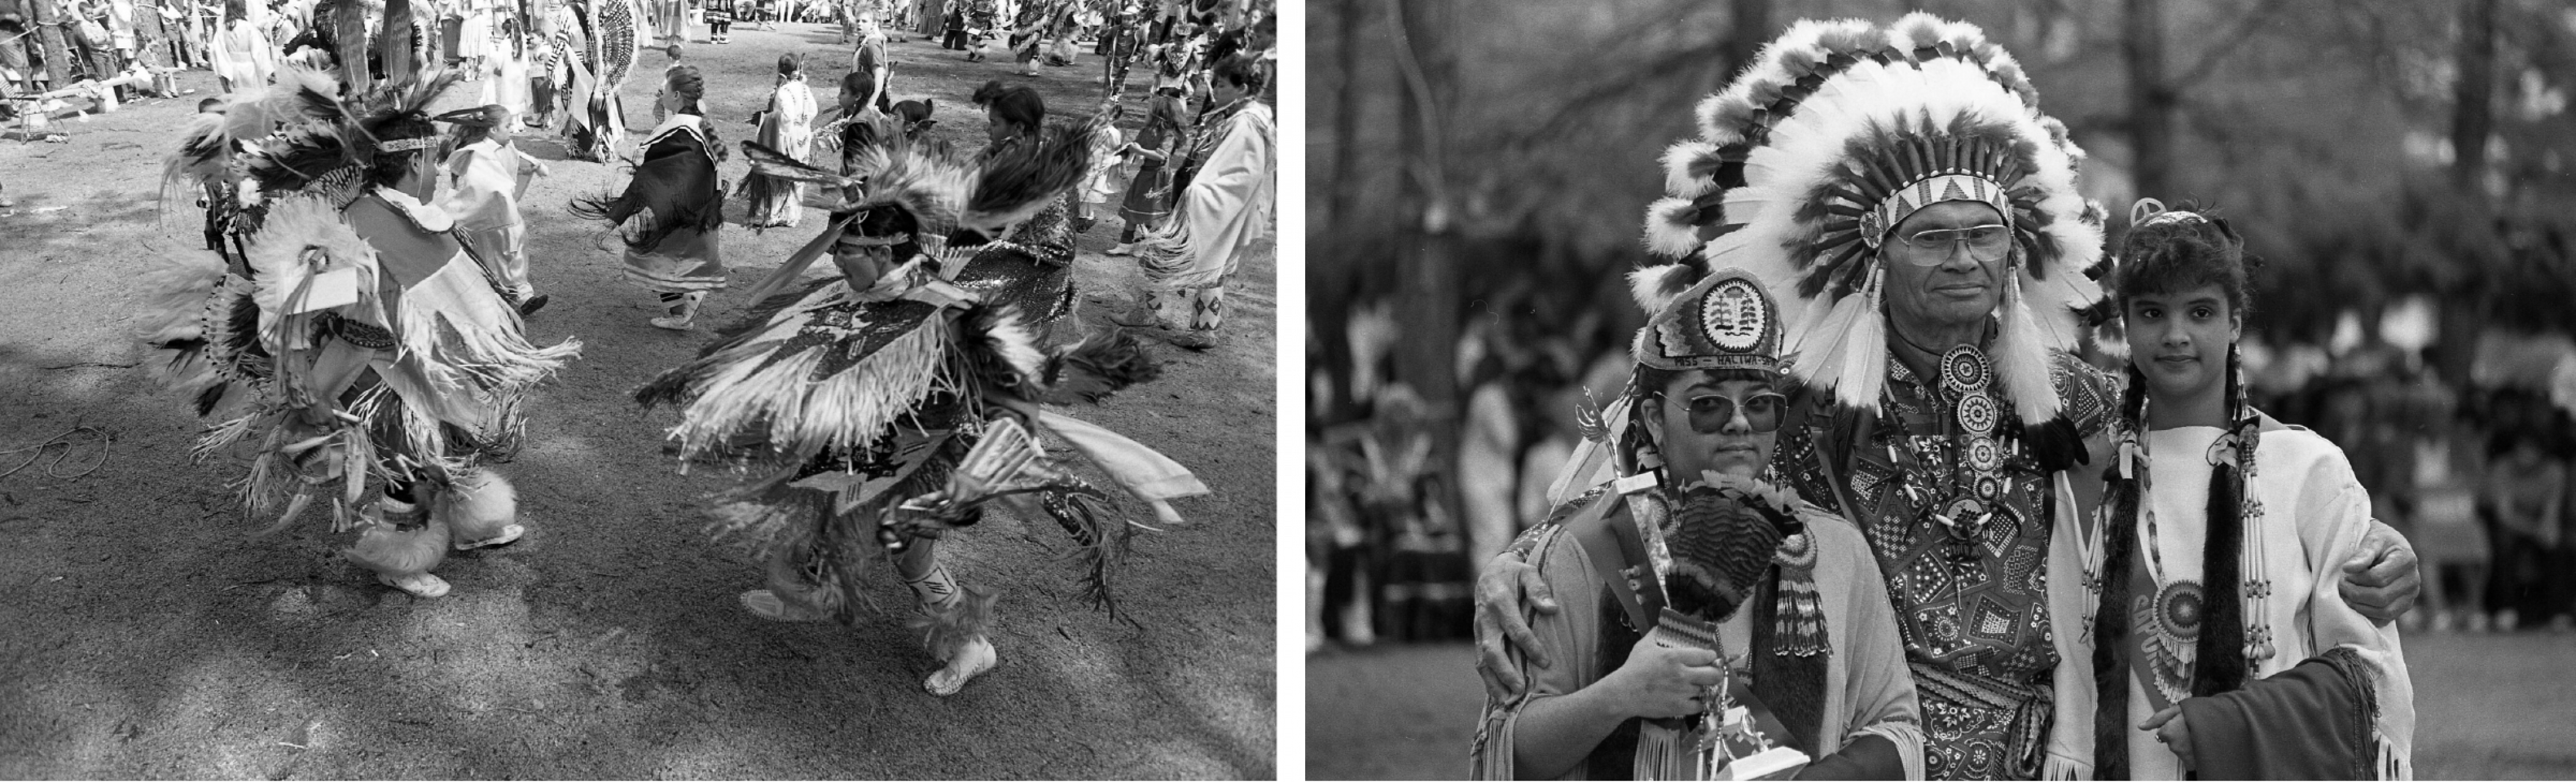 24th annual Haliwa-Saponi Pow Wow near Hollister, NC; 16 April 1989. From the News and Observer Negative Collection, Copyrighted by the N&O.